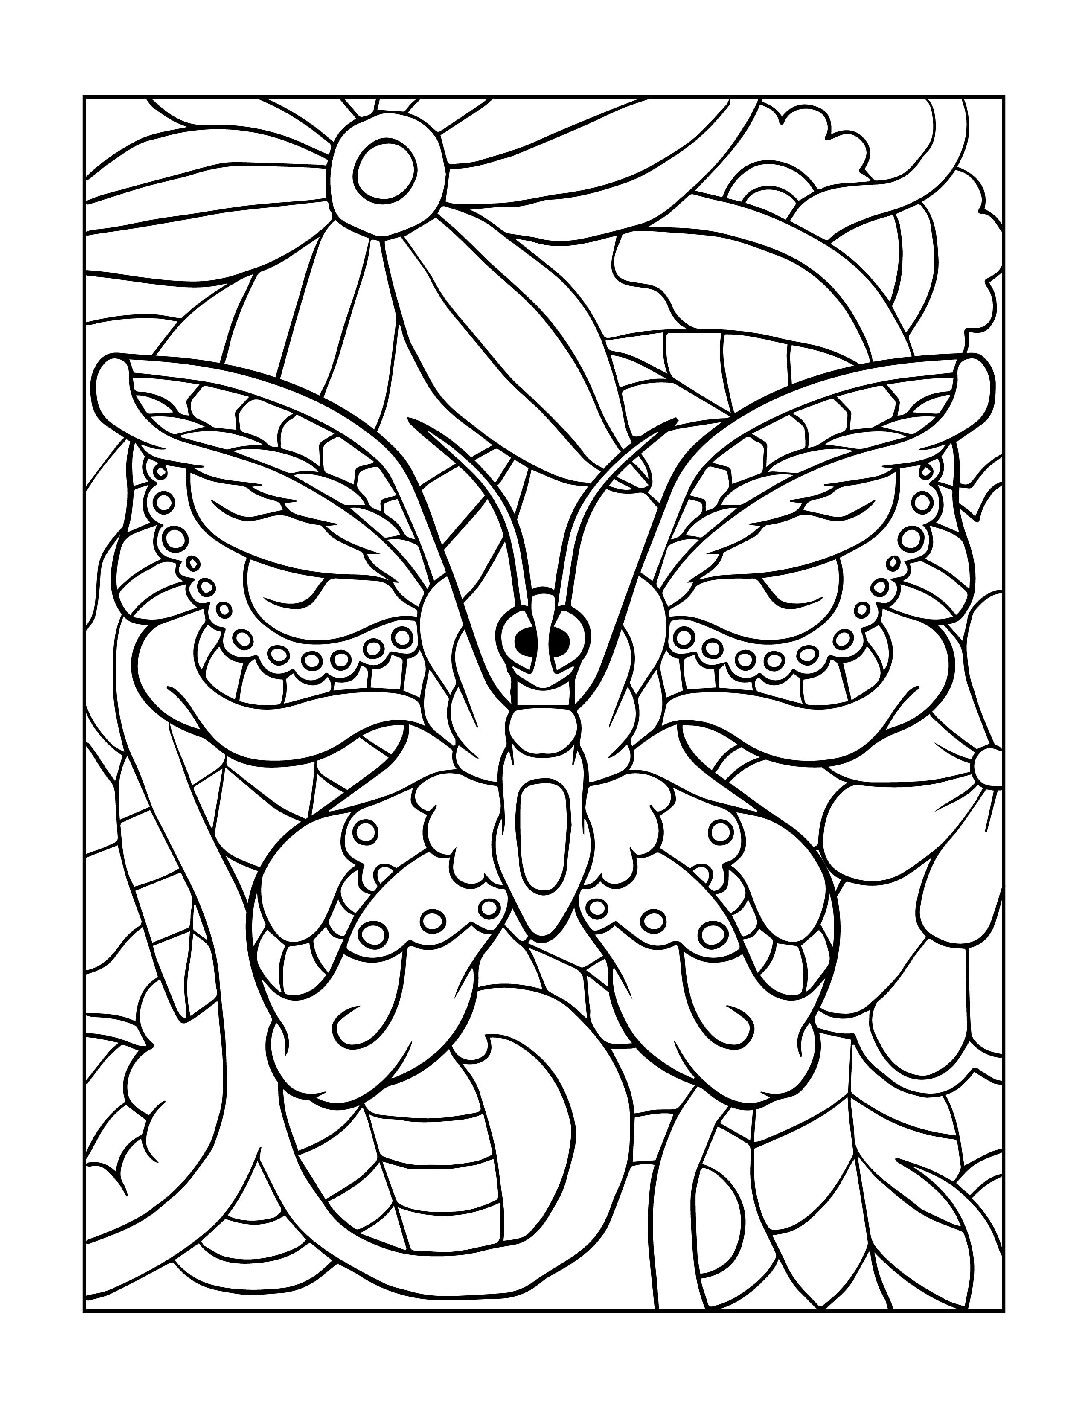 Coloring-Pages_Butterflies-6-01-1-pdf Free Printable Butterfly Colouring Pages